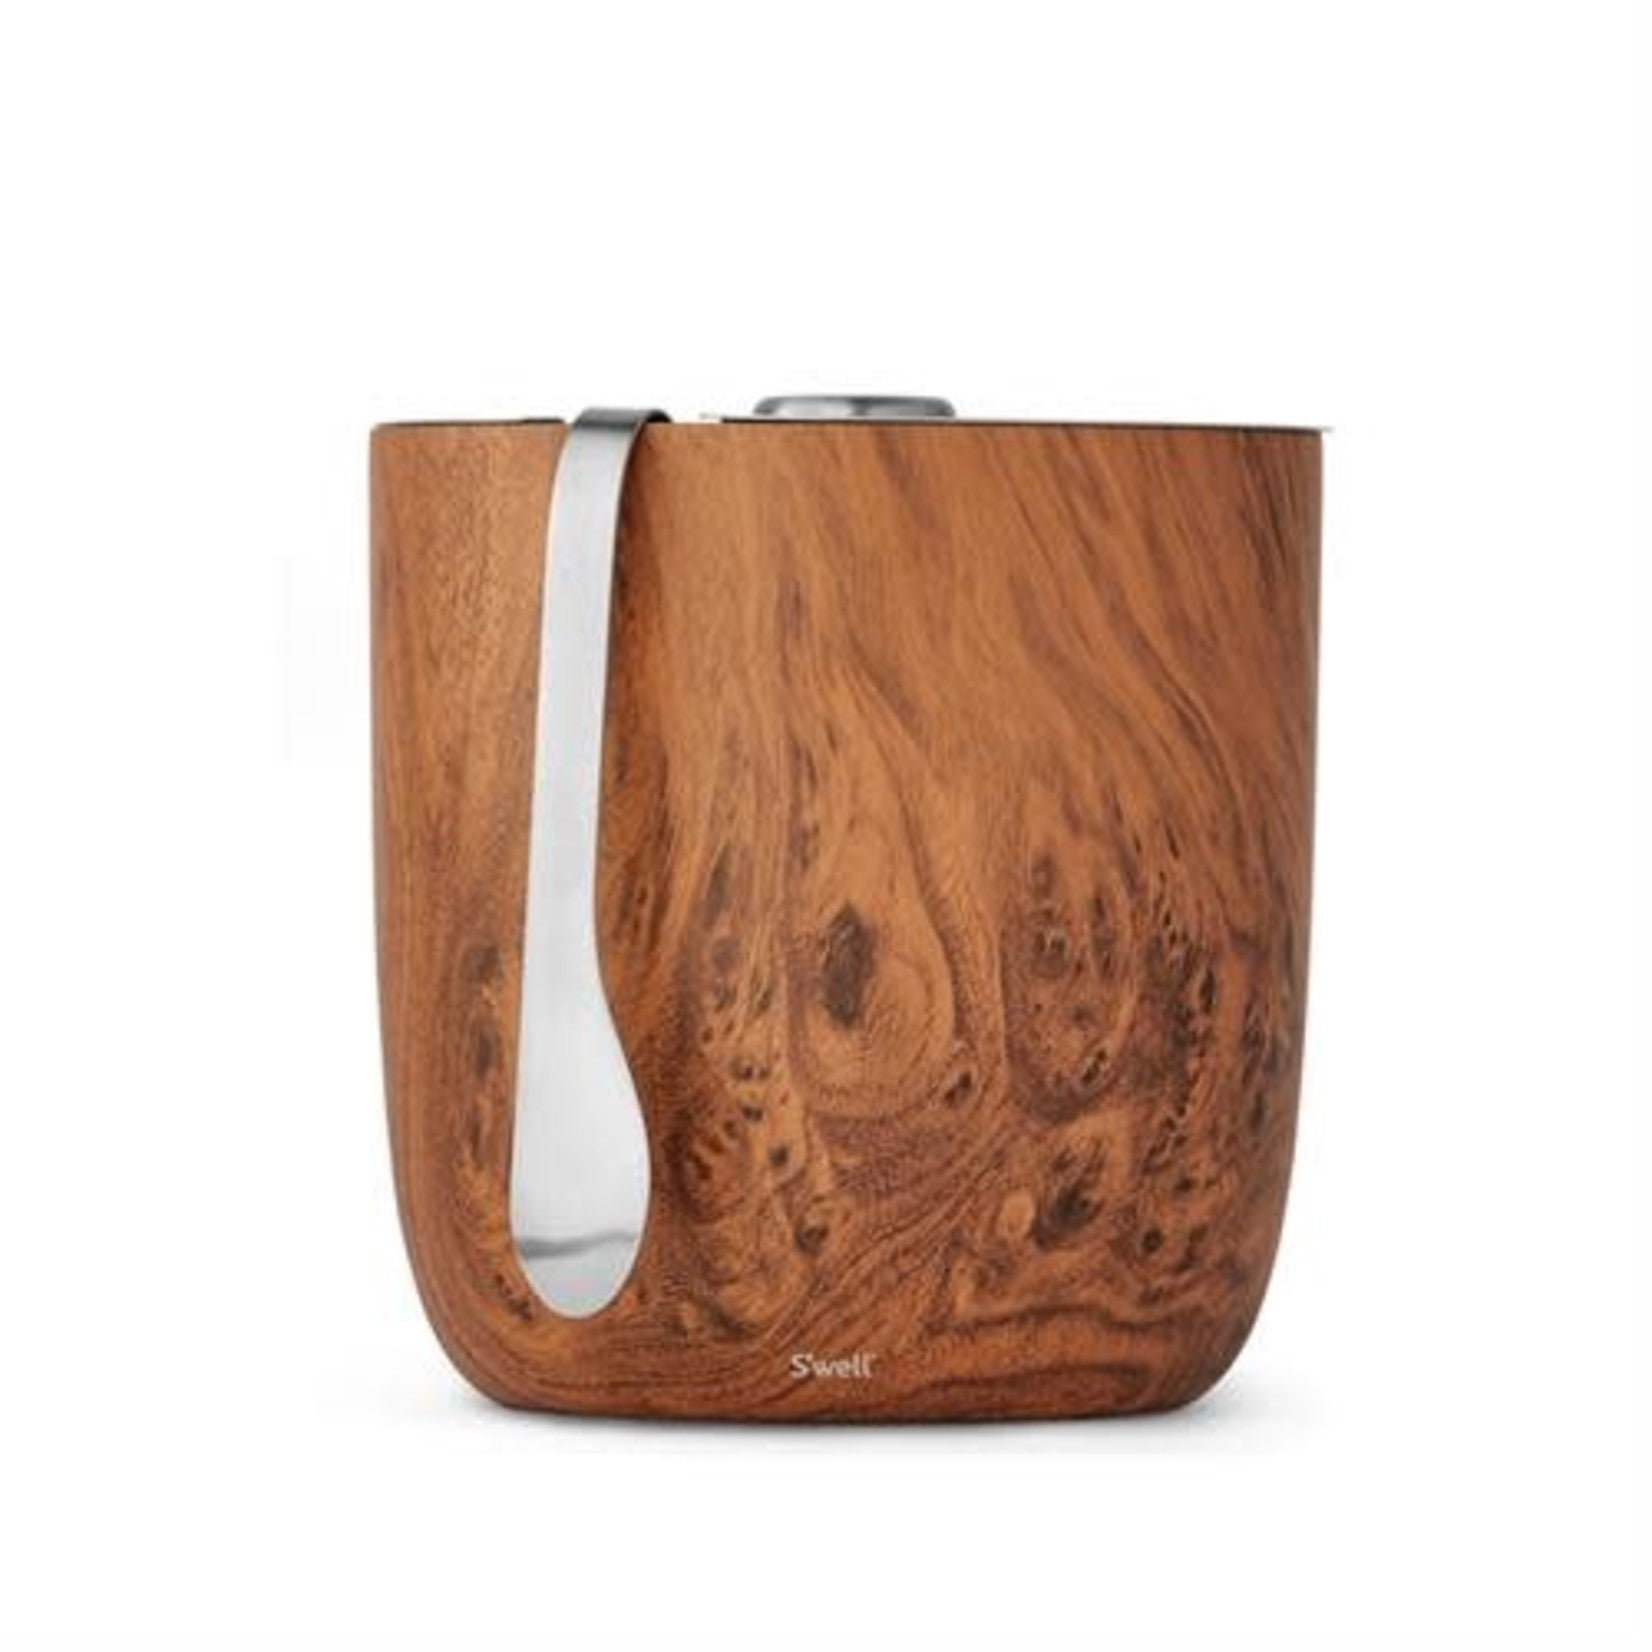 Swell Teak Insulated Stainless Steel Ice Bucket & Tongs  67 oz